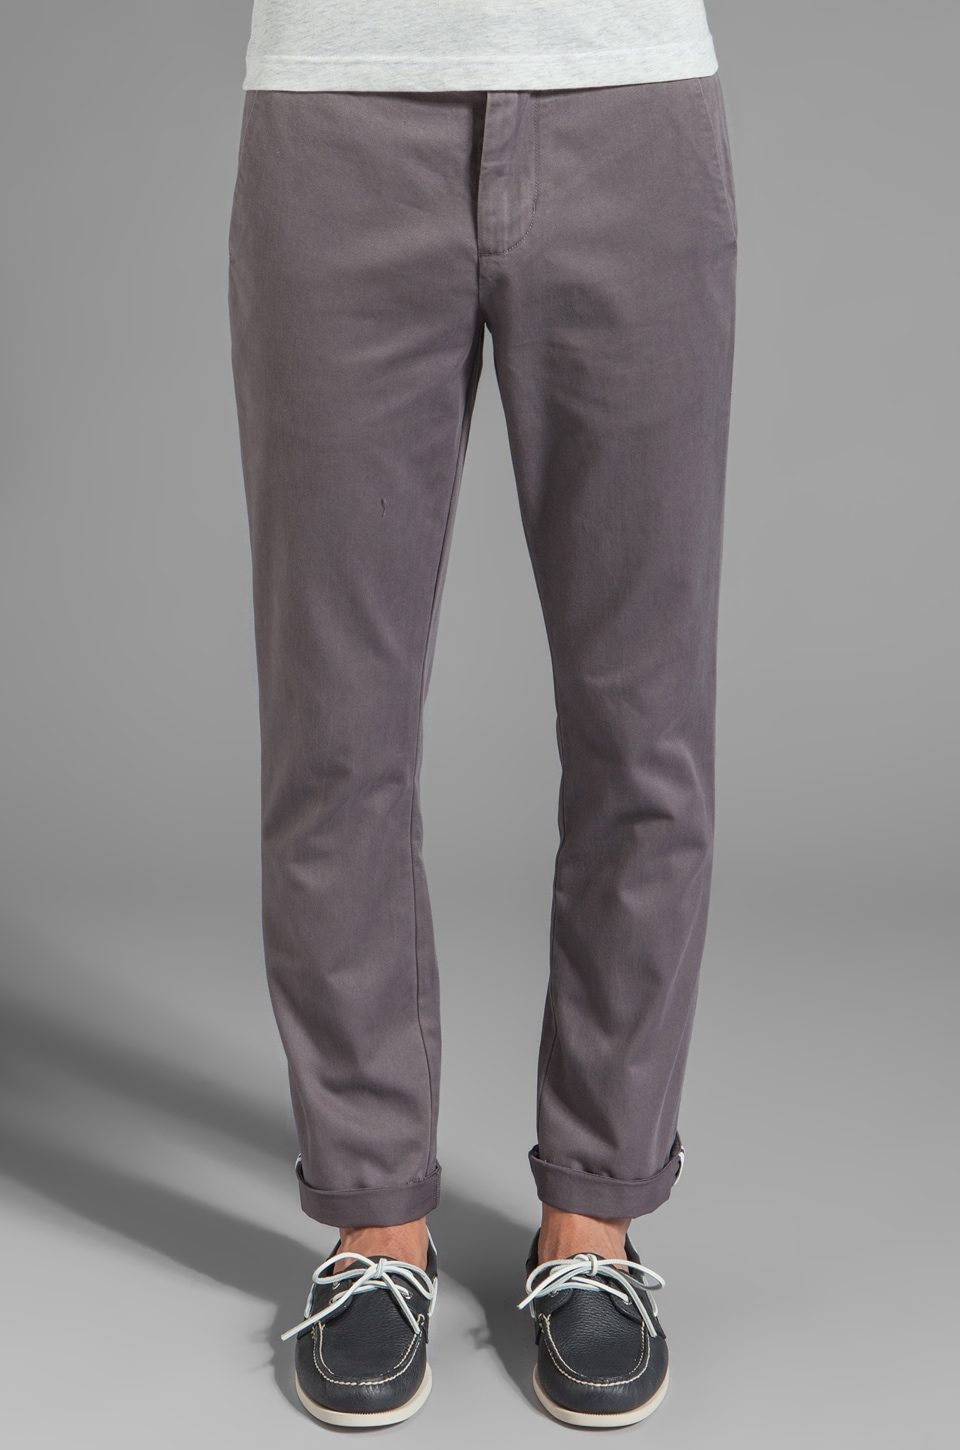 life/after/denim Slim Fit Chino in Castlerock